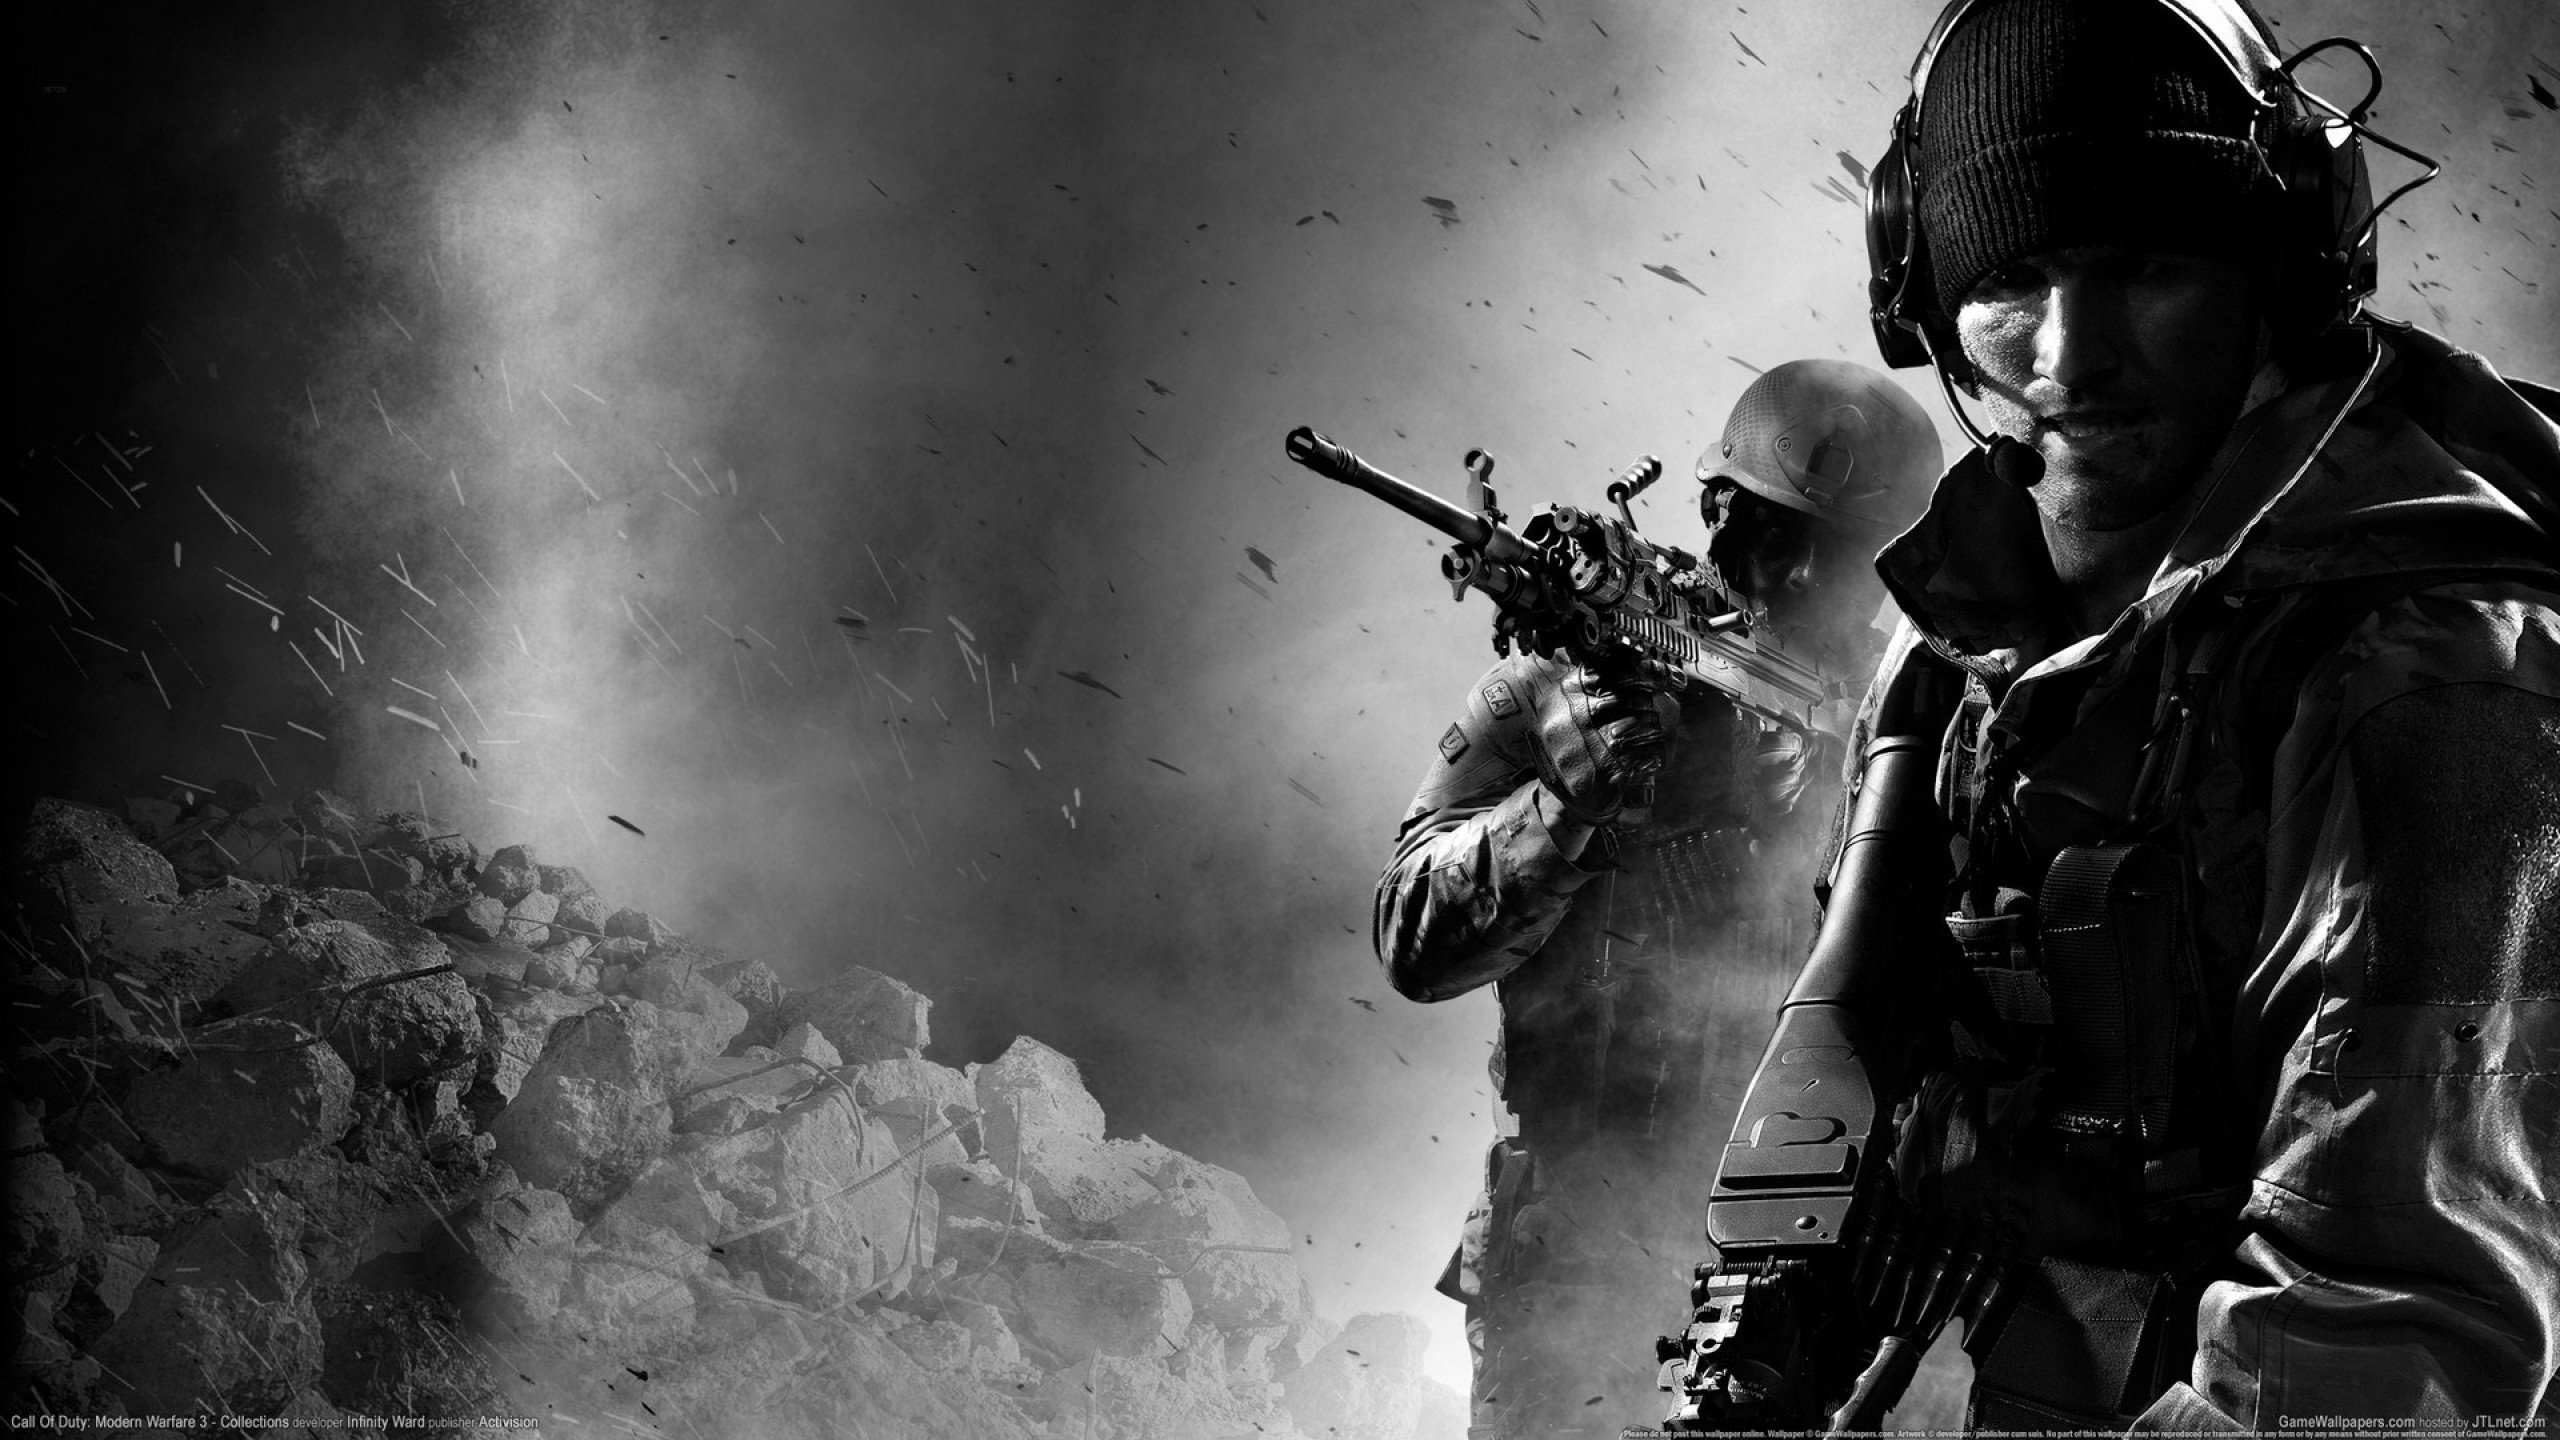 Call Of Duty Modern Warfare 3 Mw3 Wallpapers 2560x1440 Desktop